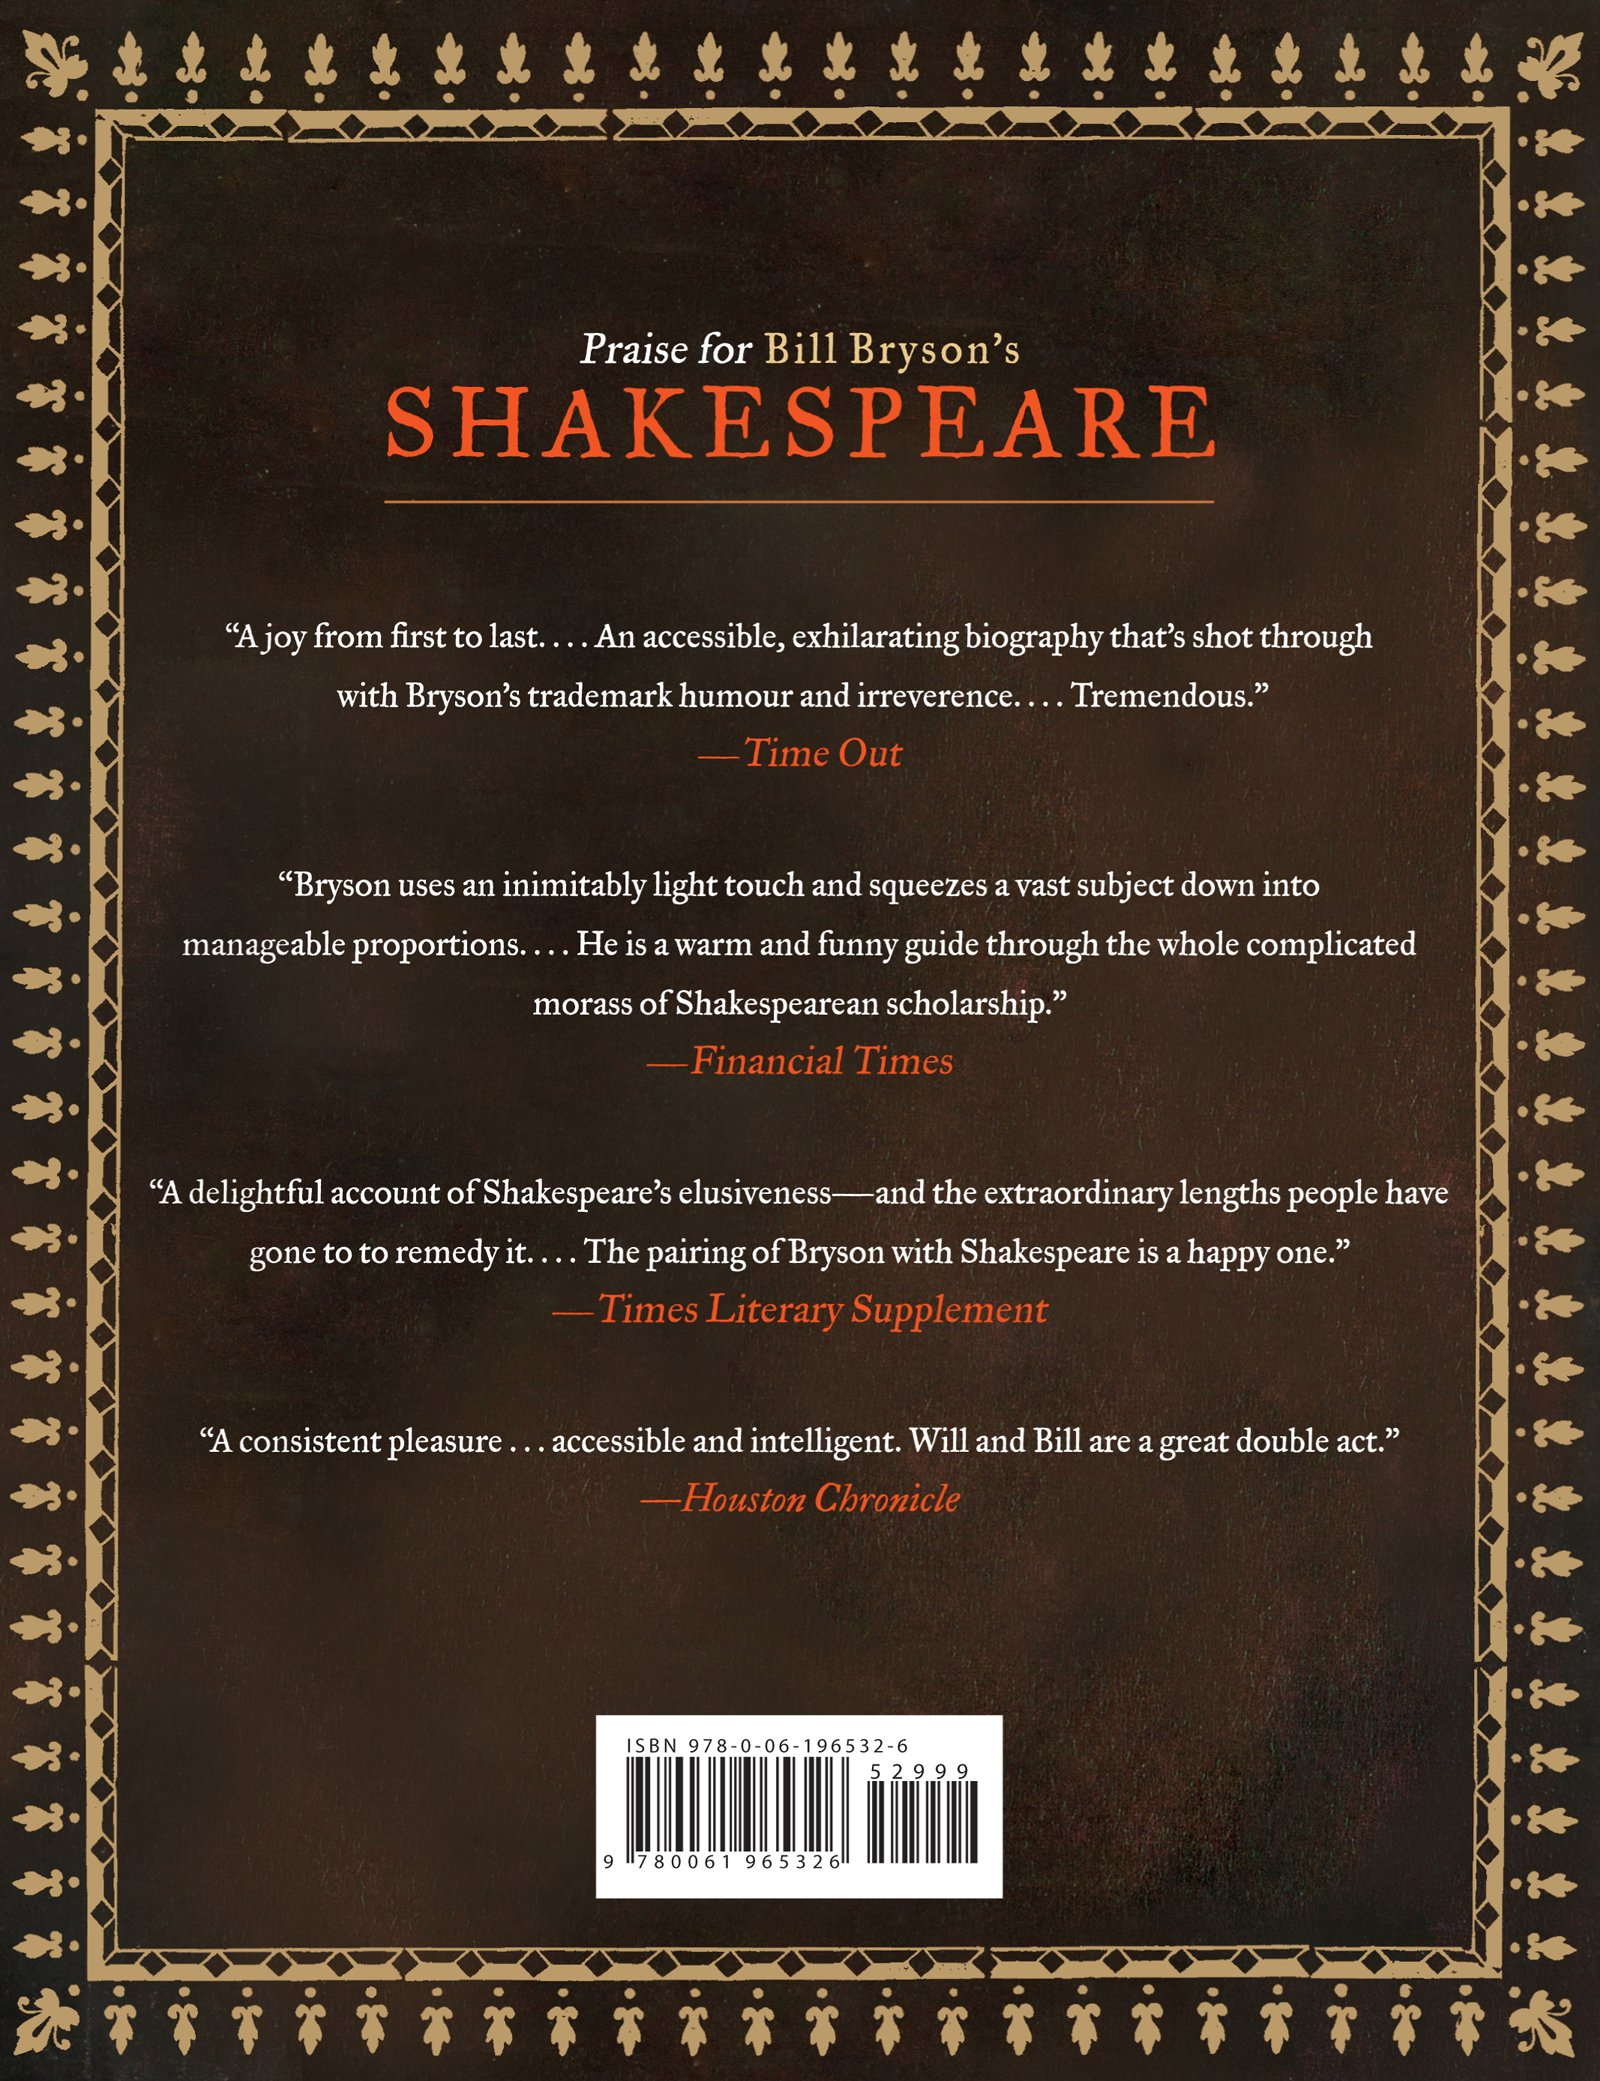 Amazon: Shakespeare (the Illustrated And Updated Edition)  (9780061965326): Bill Bryson: Books